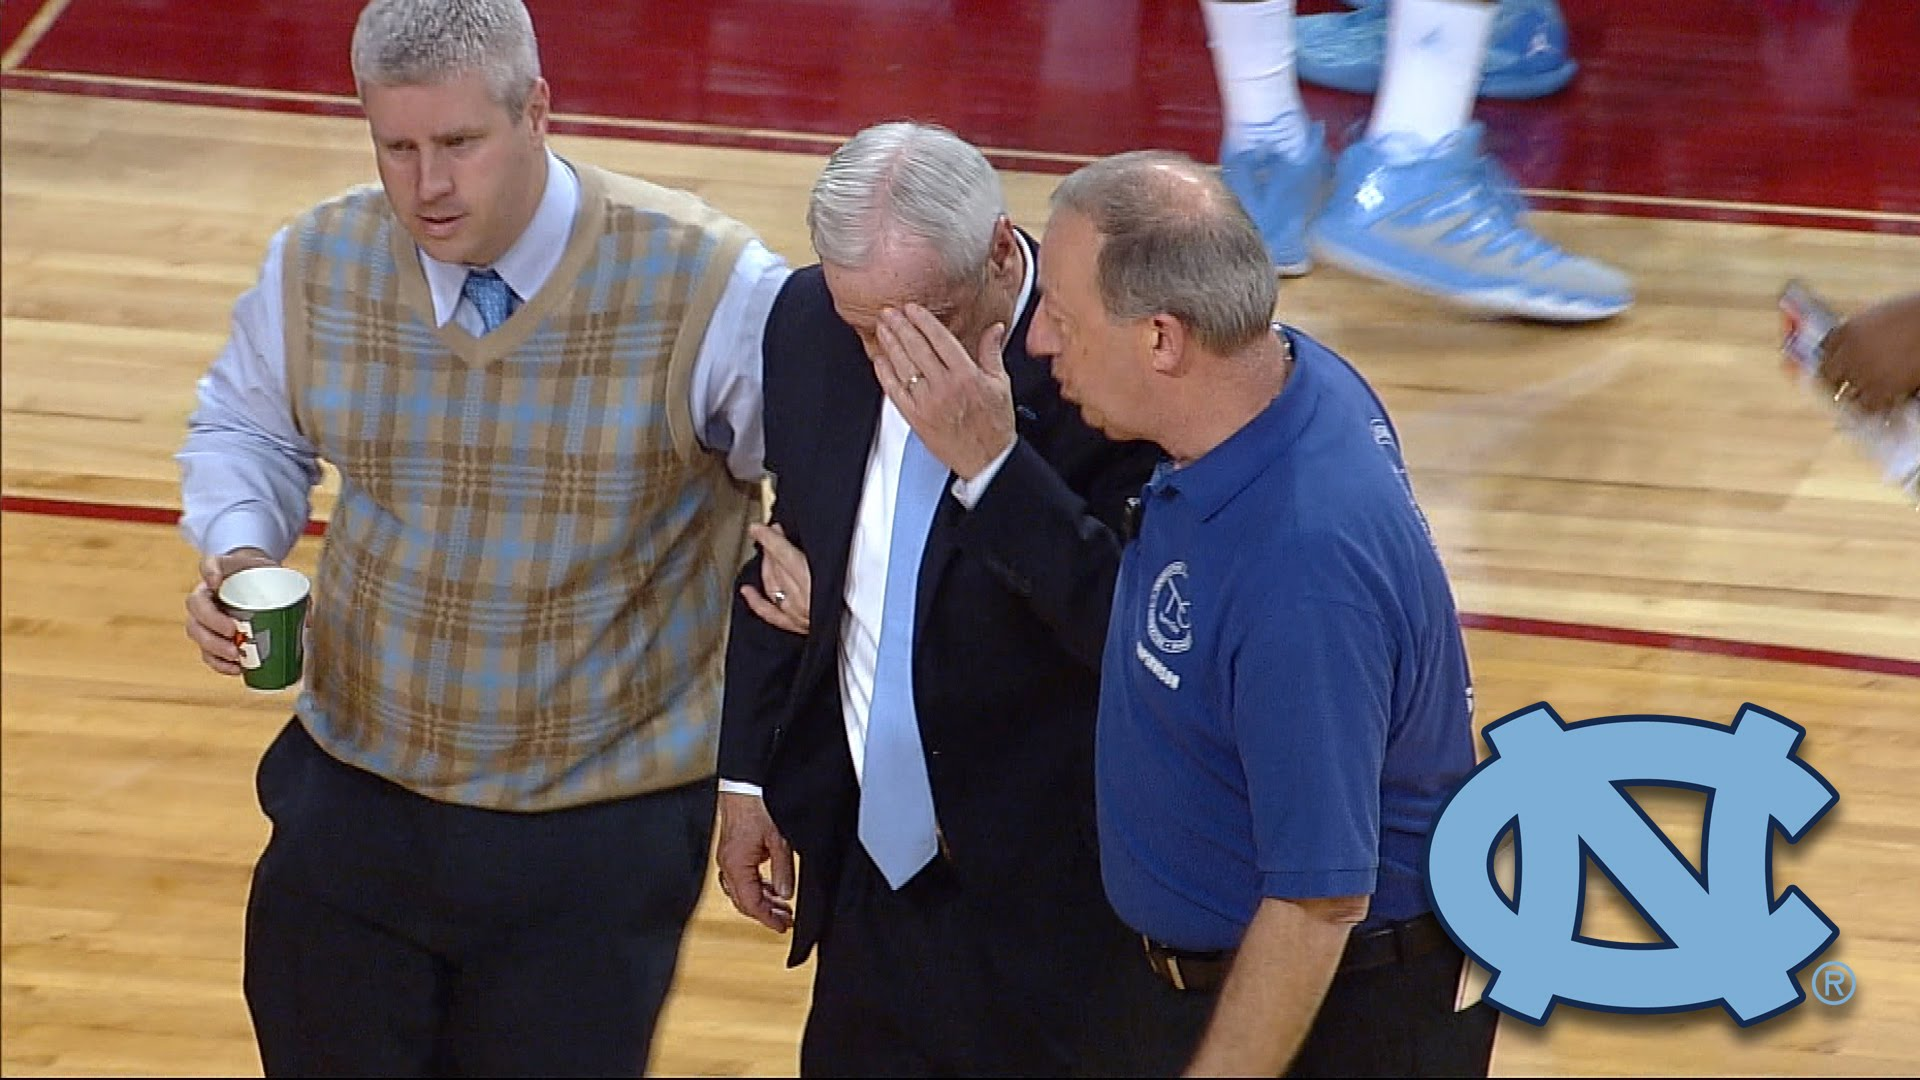 North Carolina head coach Roy Williams collapses during timeout